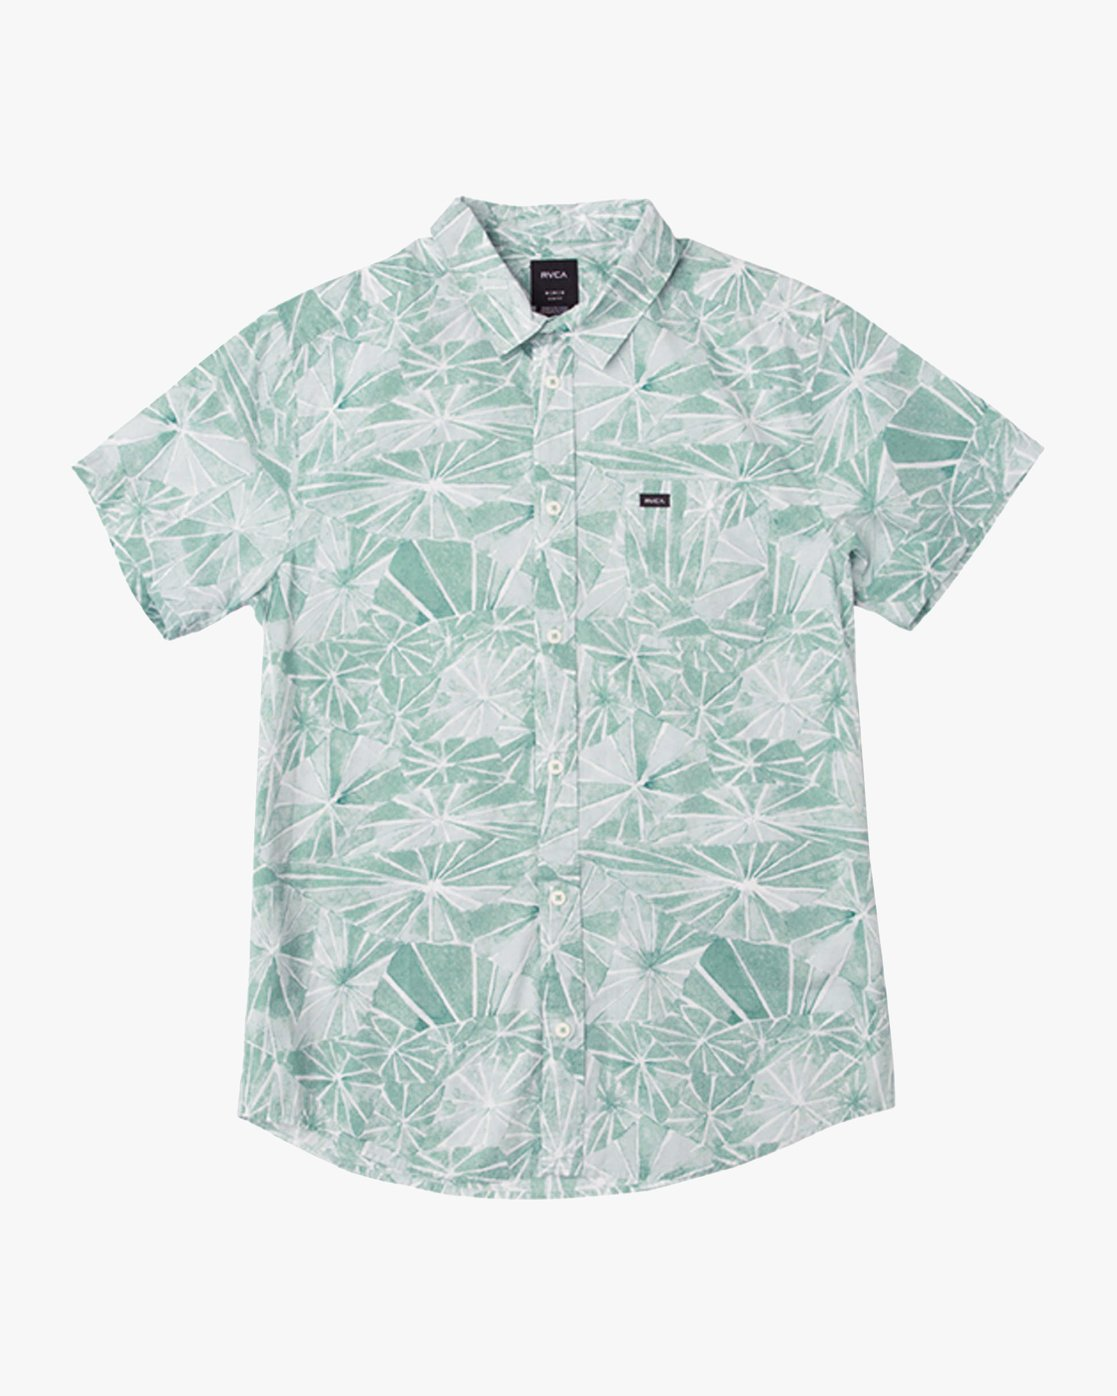 0 Blade Printed Button-Up Shirt Green M508QRBL RVCA